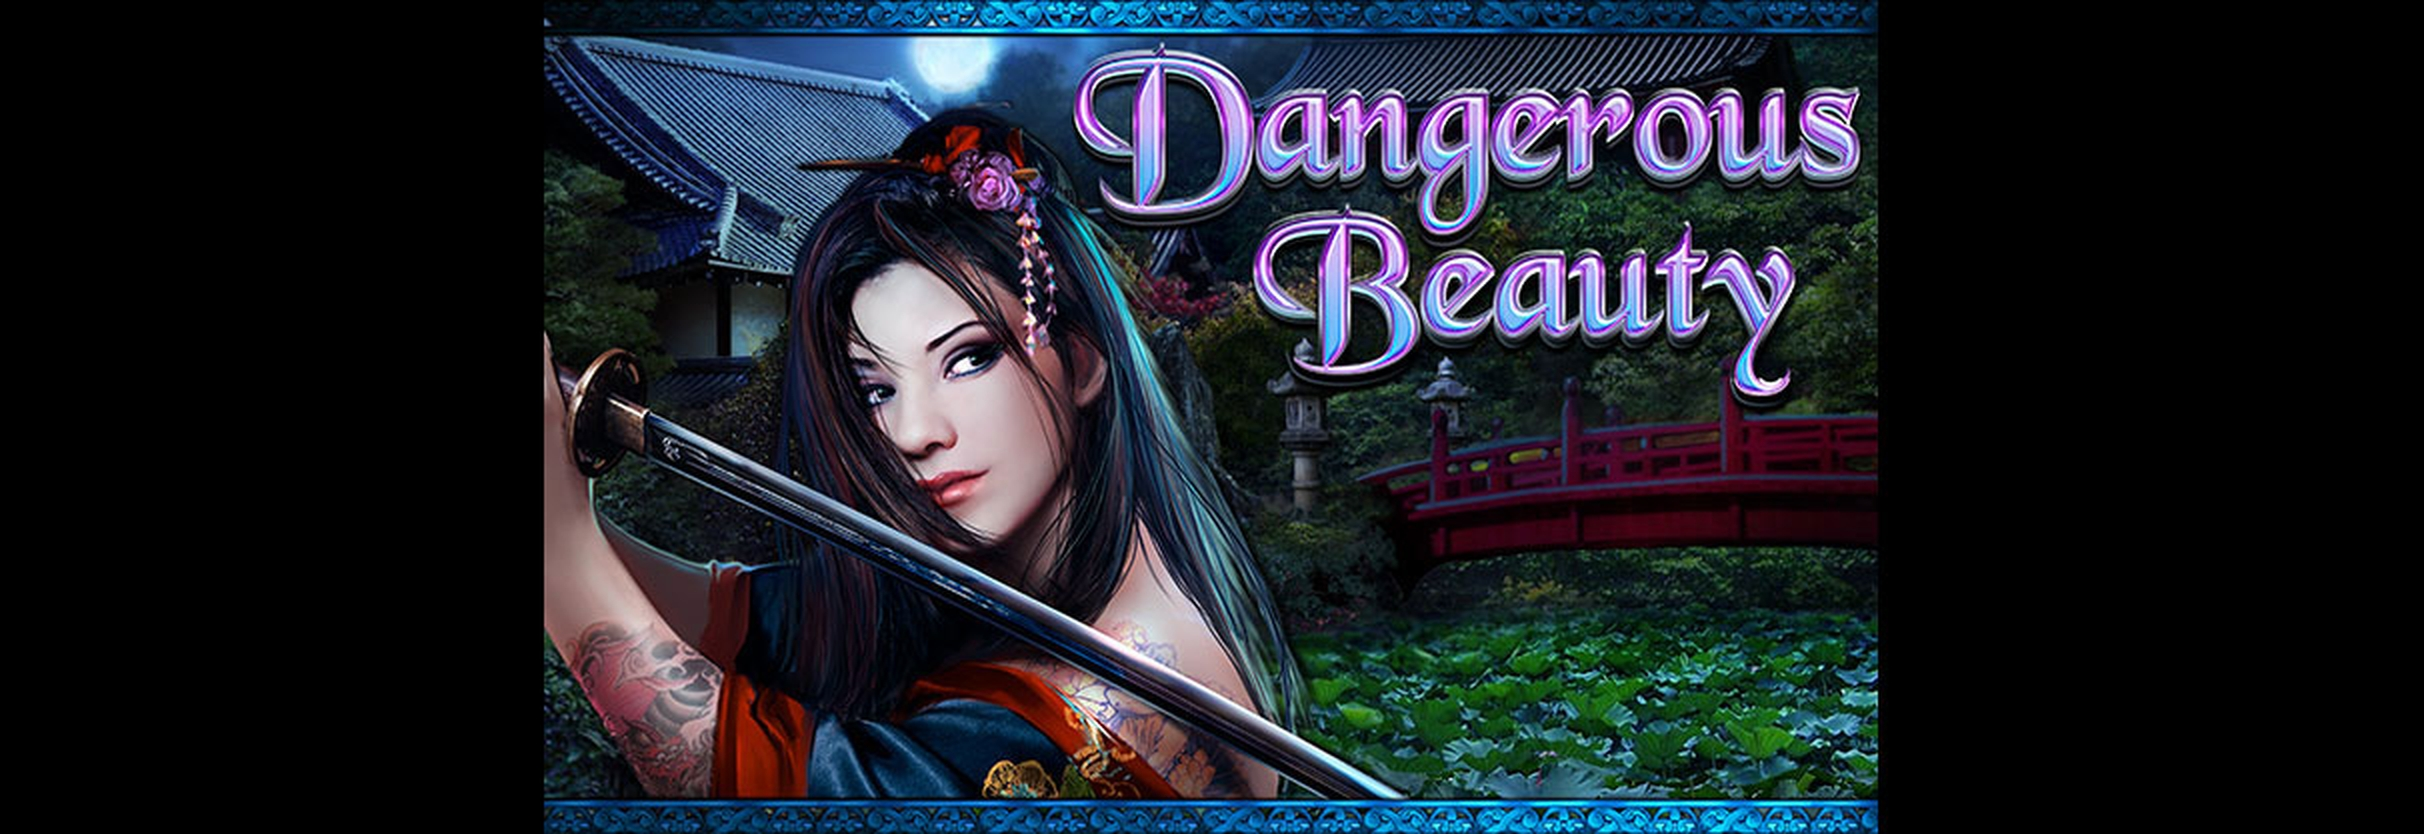 The Dangerous Beauty Online Slot Demo Game by High 5 Games